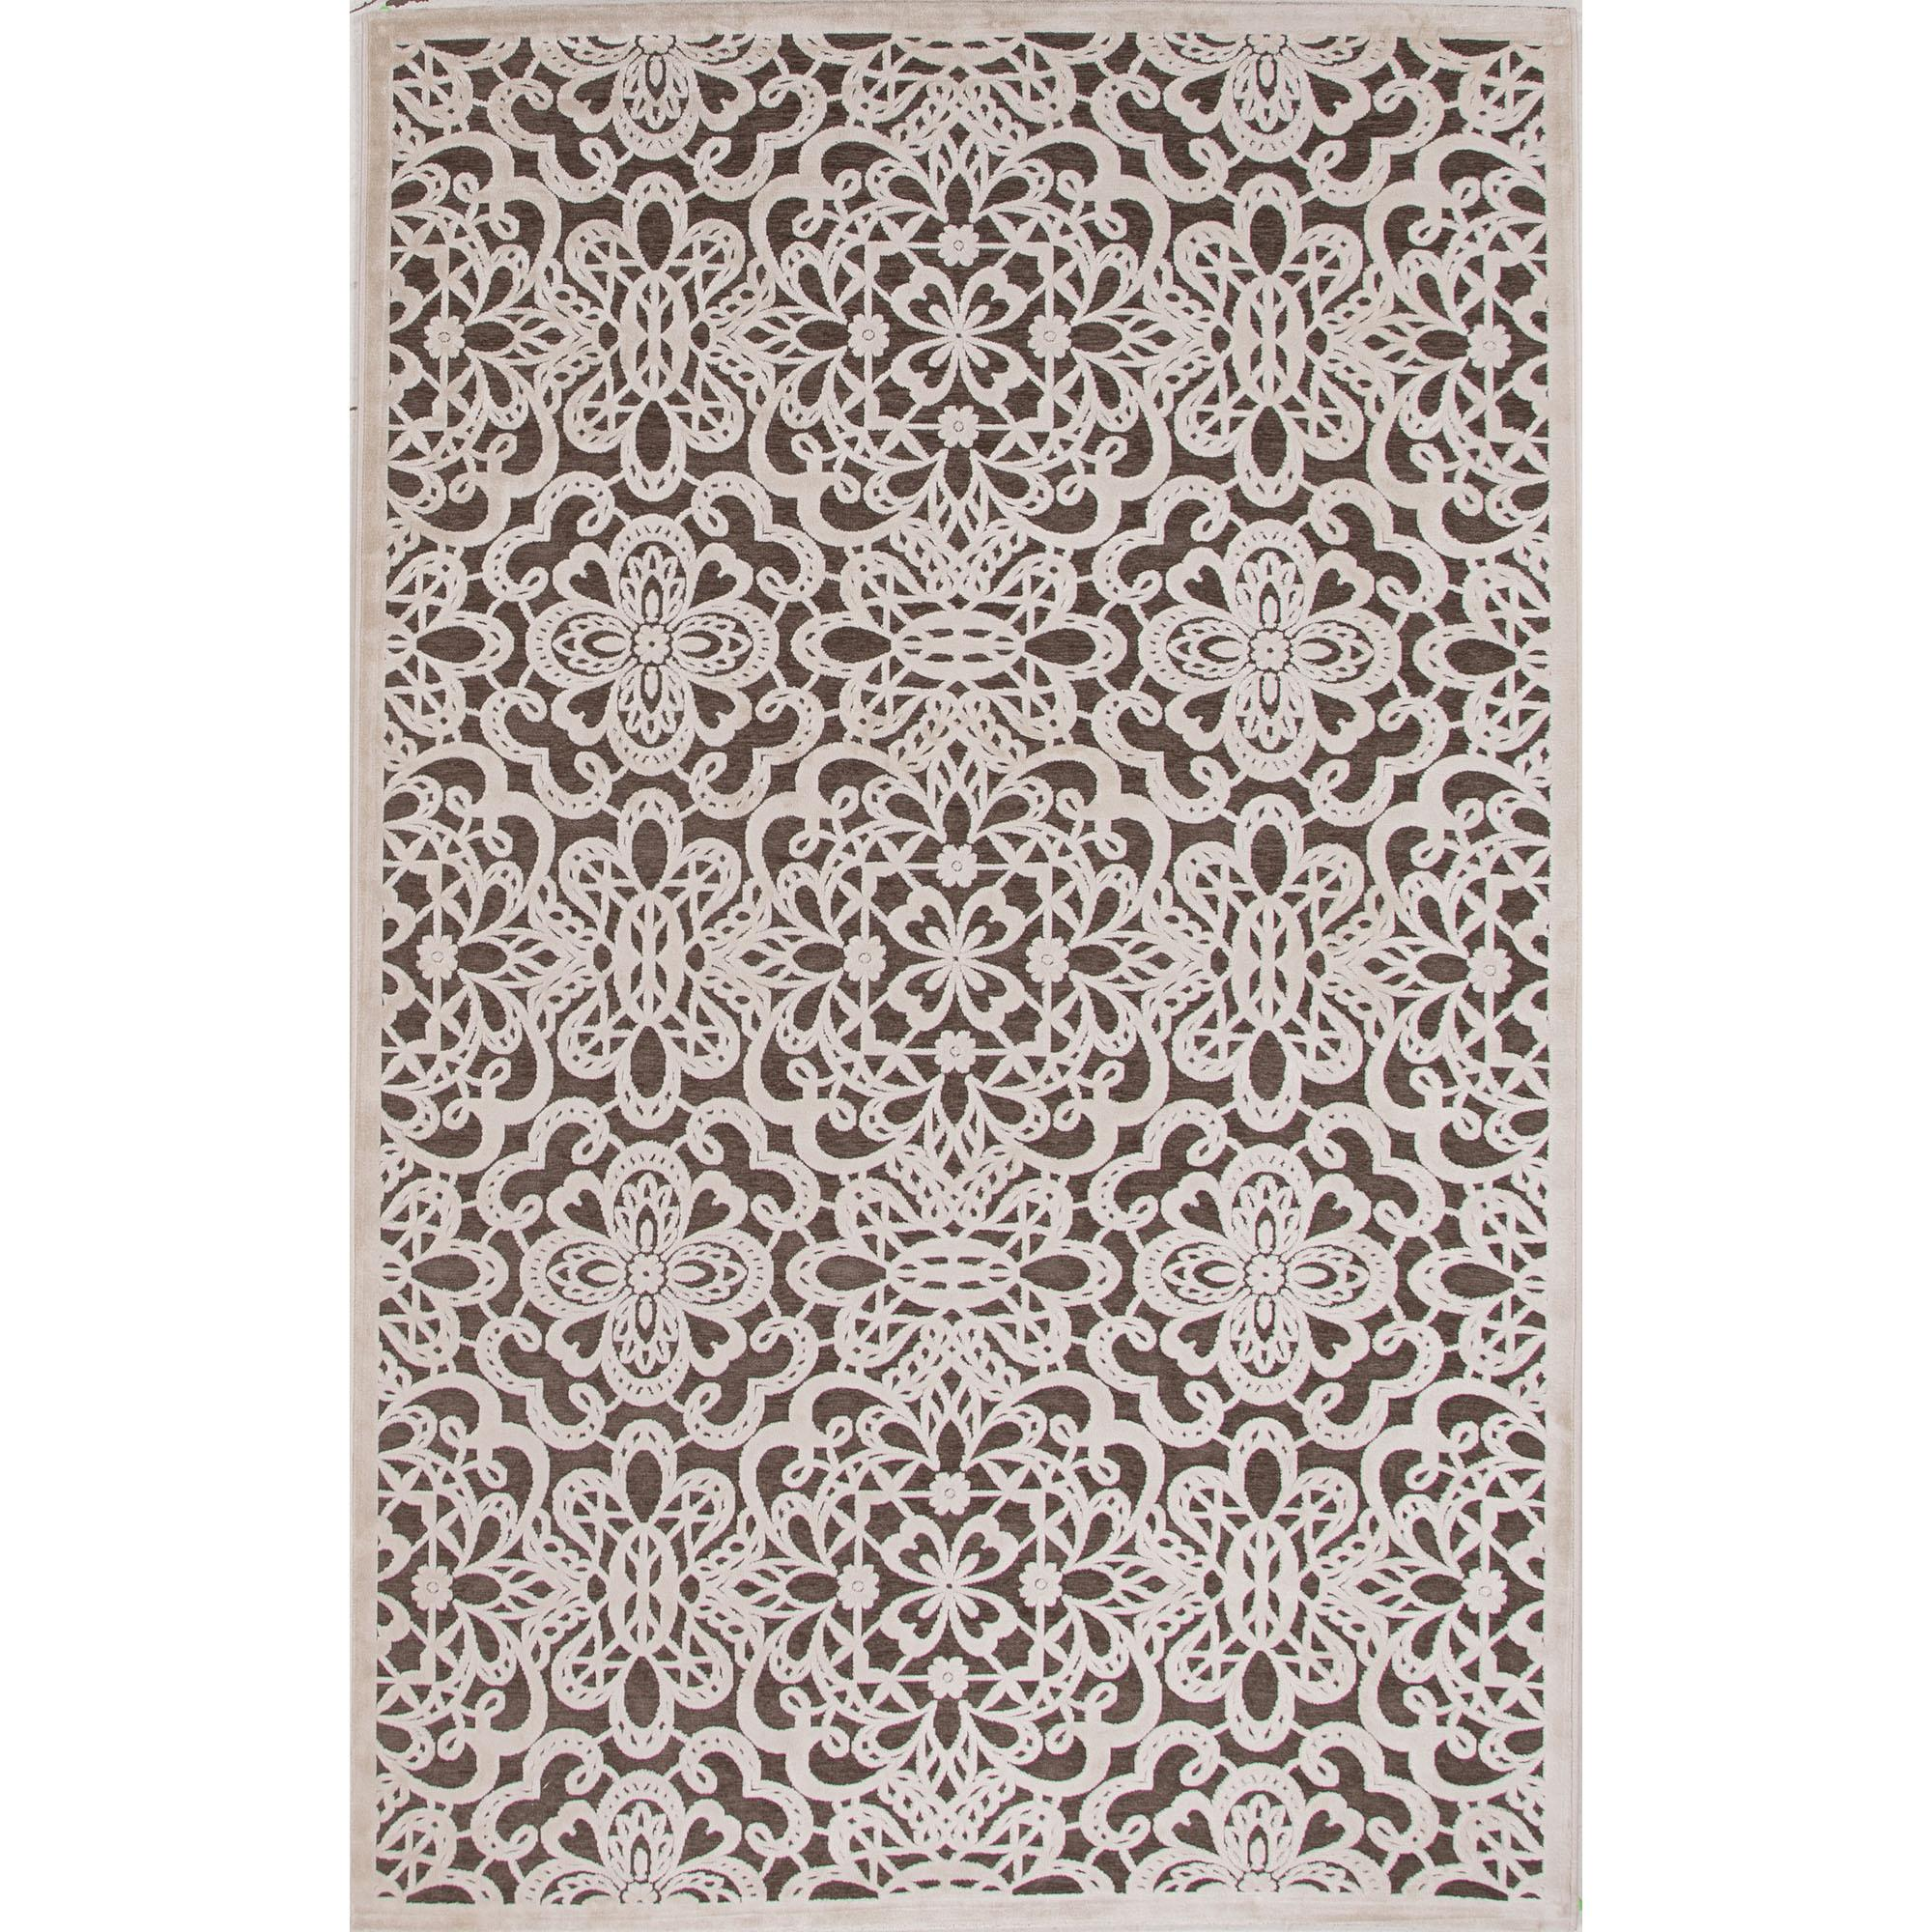 JAIPUR Rugs Fables 5 x 7.6 Rug - Item Number: RUG121744